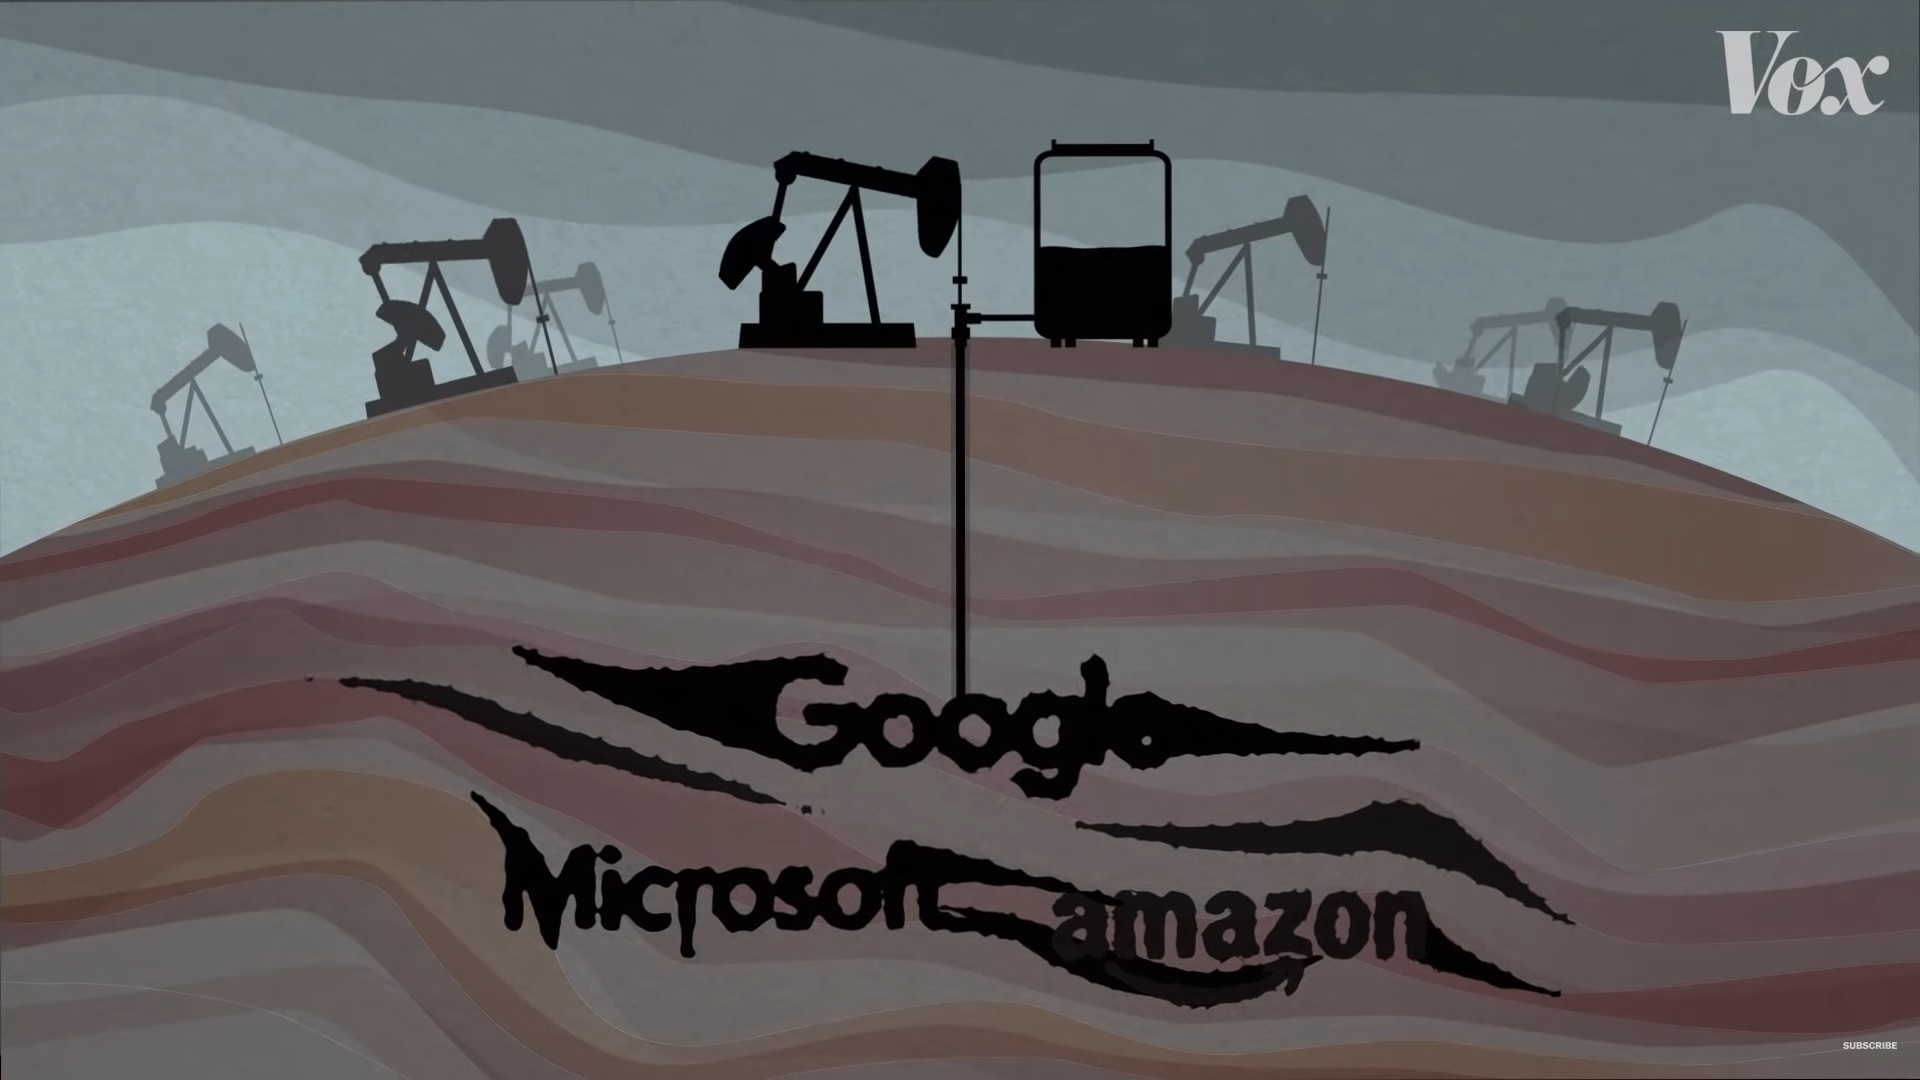 Google, Microsoft ve Amazon Petrol İşindeler